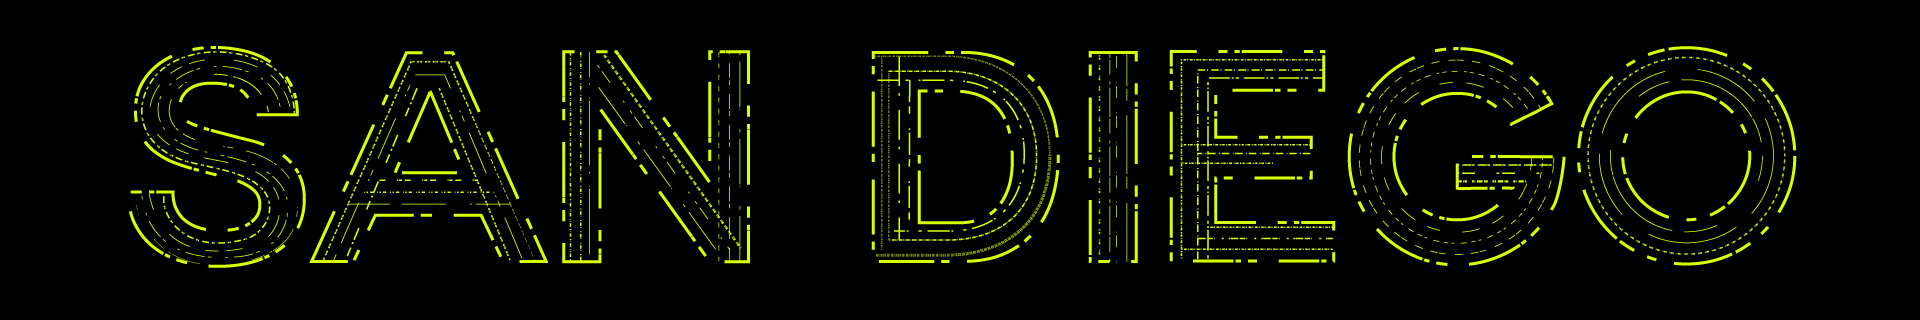 Futuristic lettering design for the city of San Diego, developed in Adobe Illustrator.